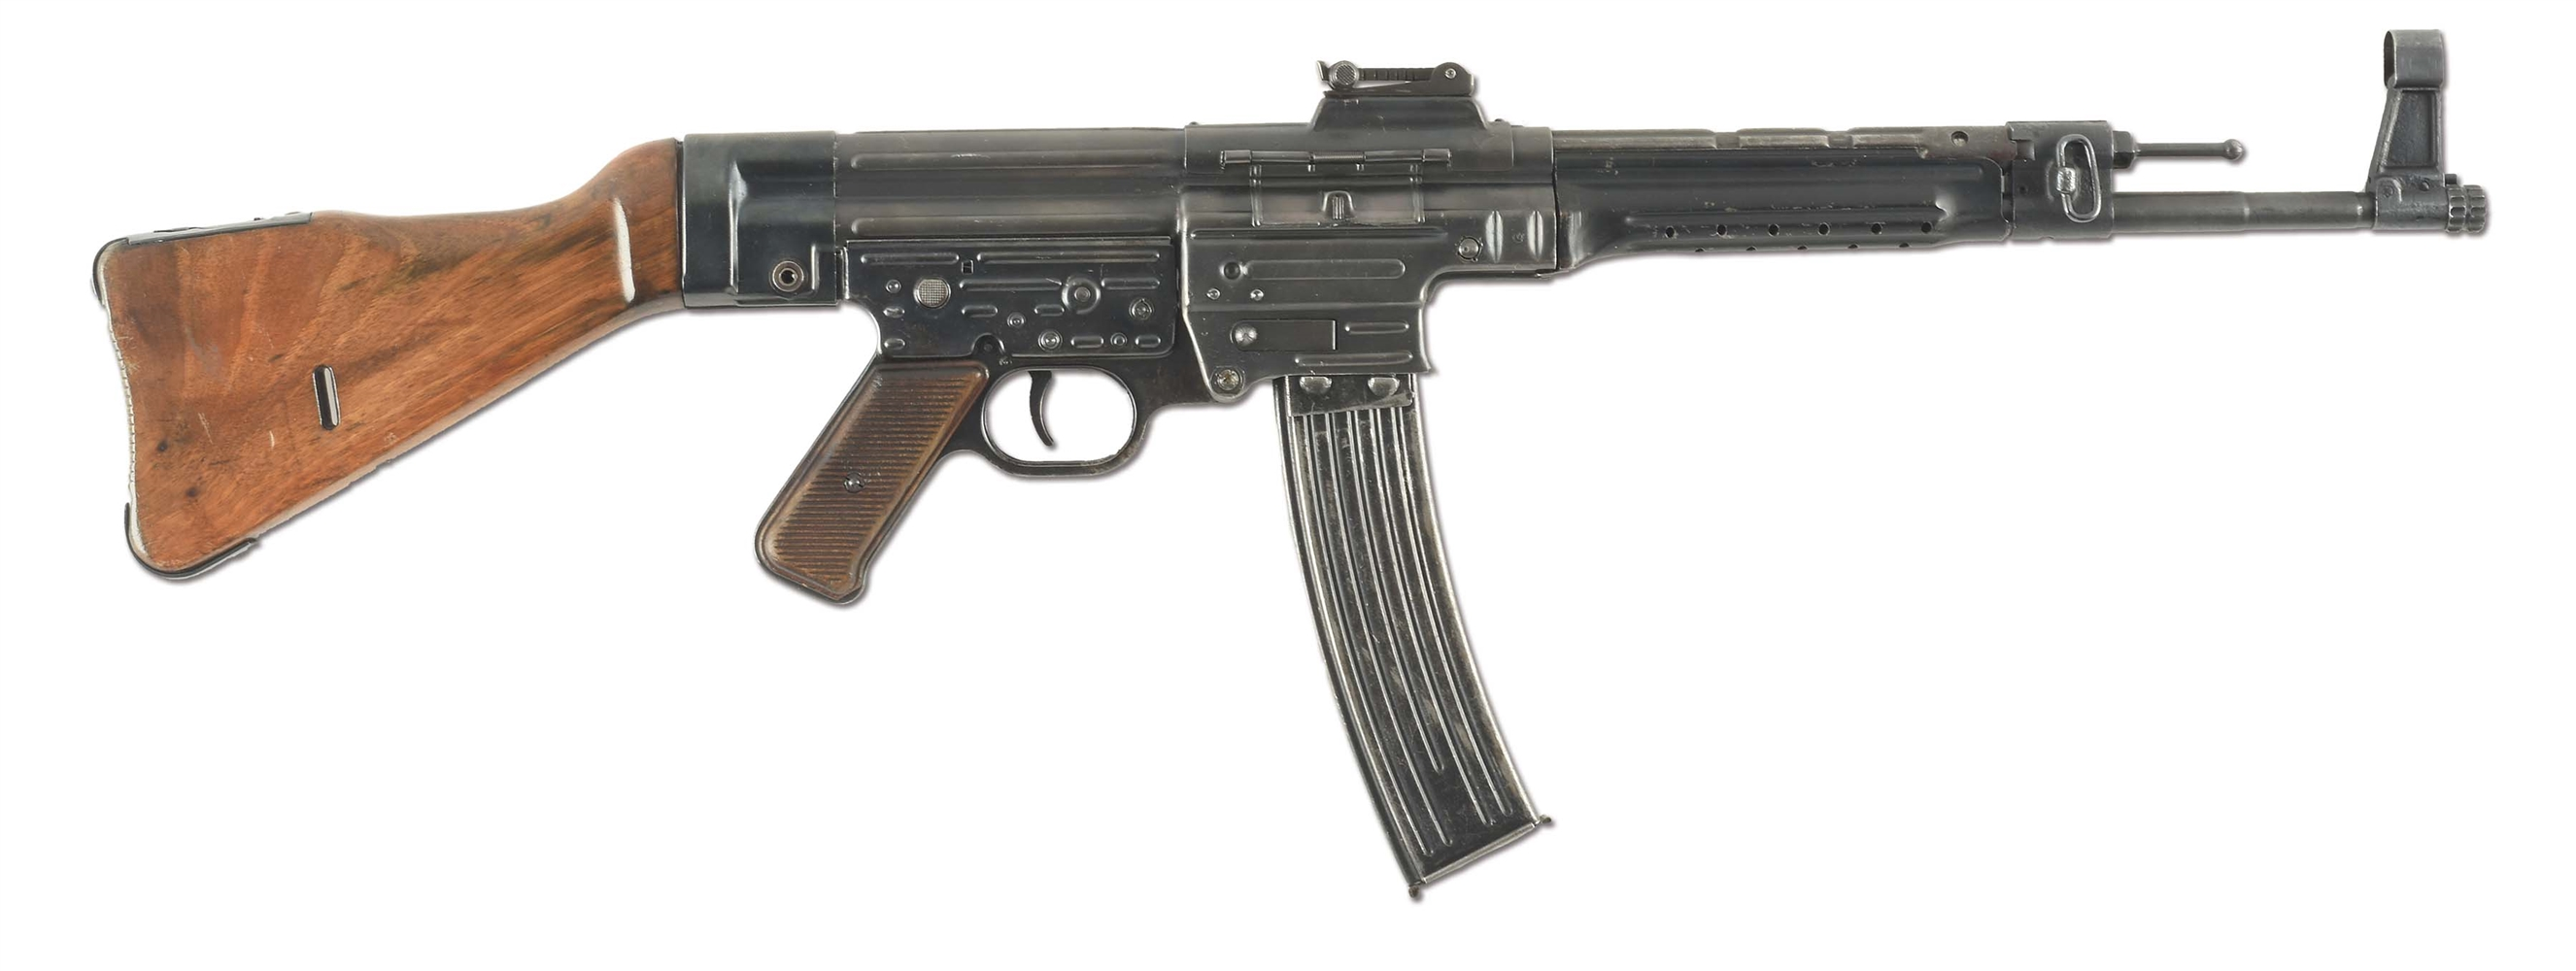 (N) HIGHLY DESIRABLE GERMAN MP-44 MACHINE GUN (CURIO AND RELIC).